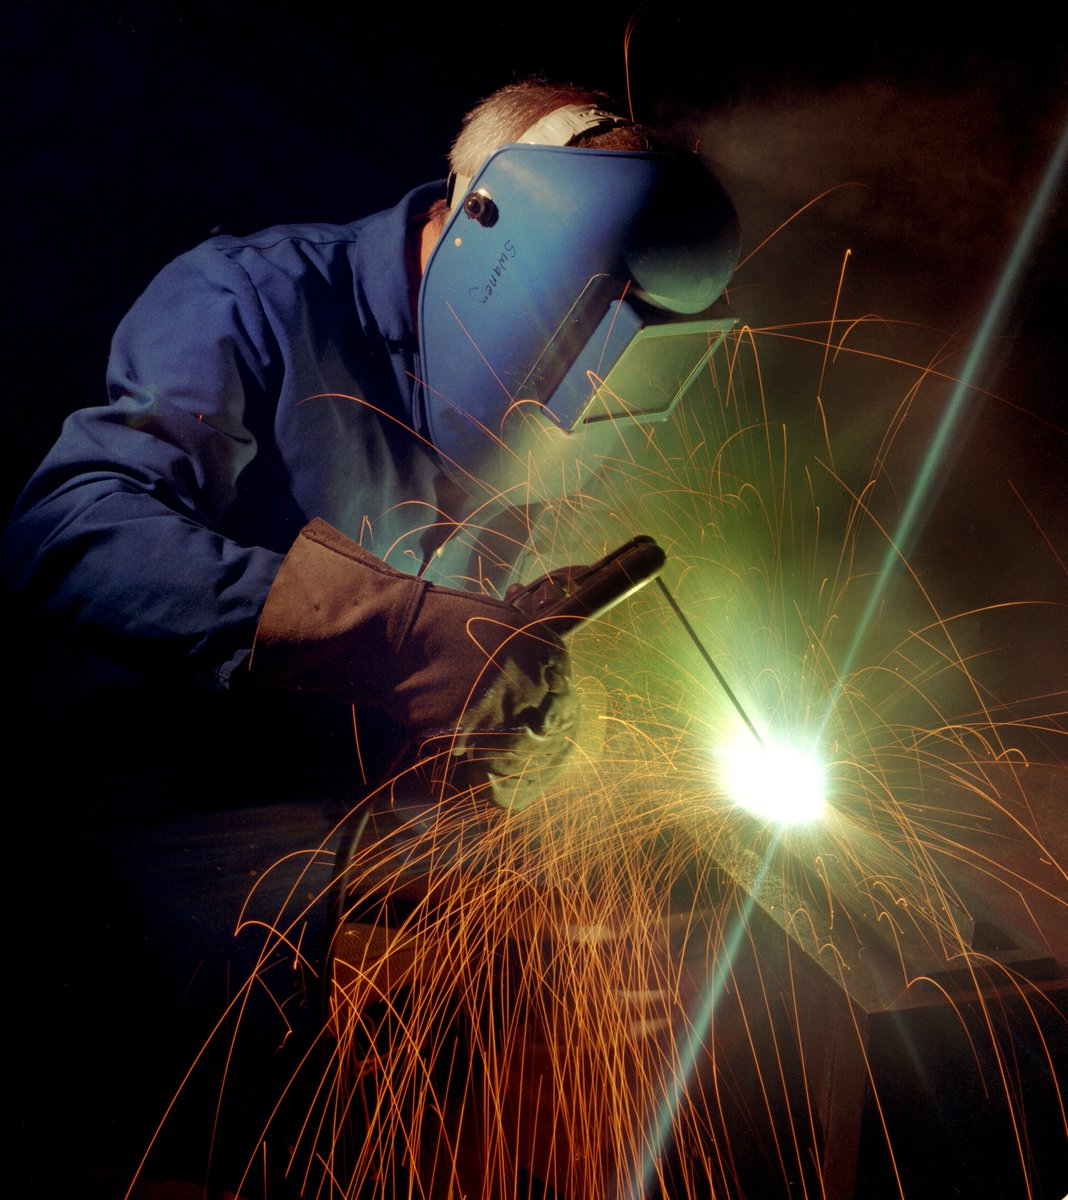 Make a career for yourself as a welder